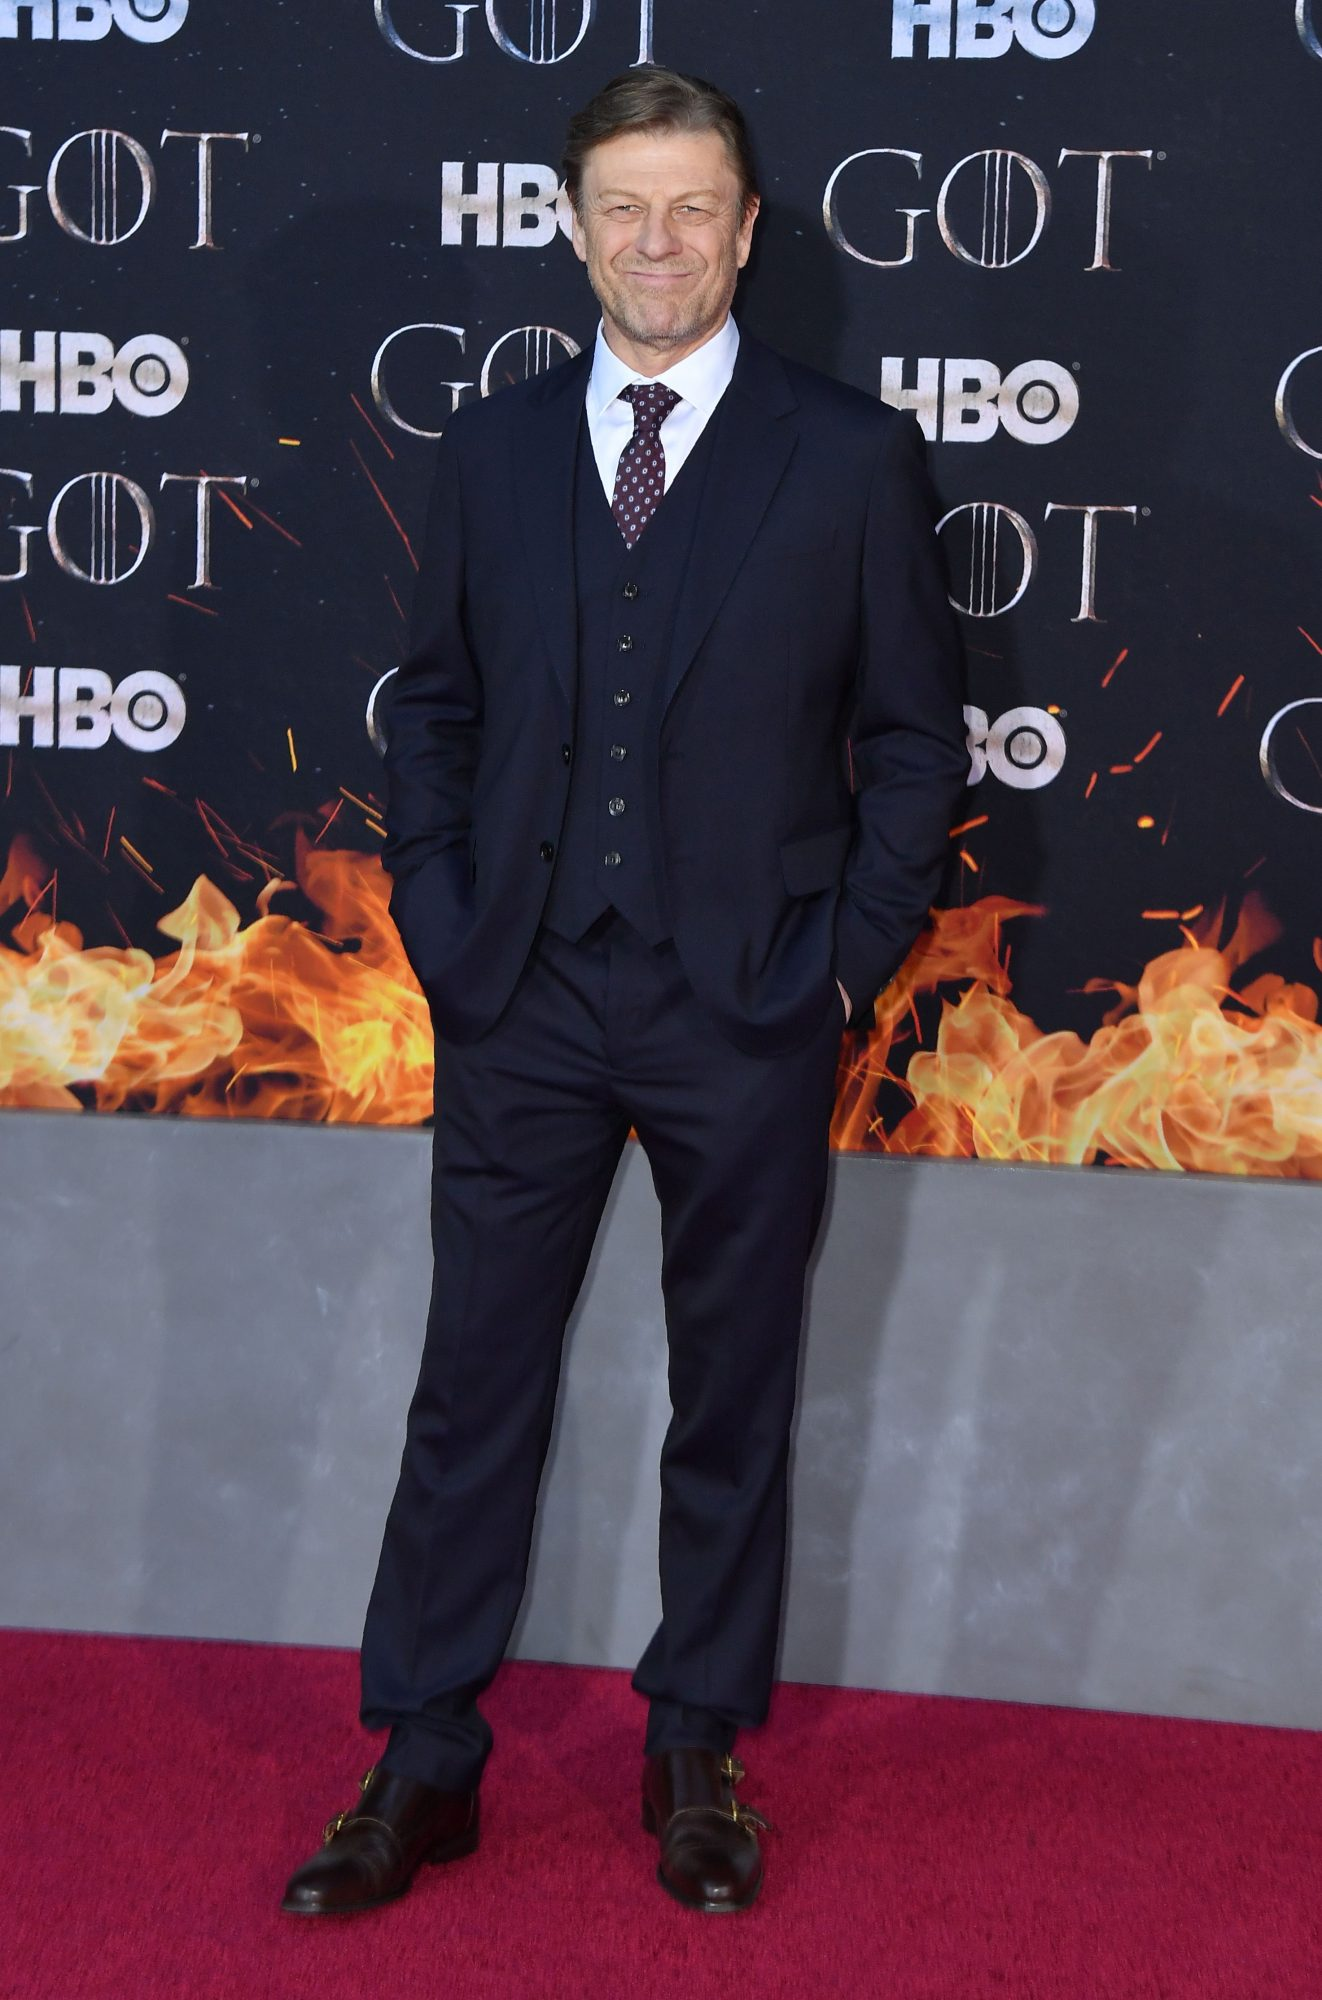 """British actor Sean Bean arrives for the """"Game of Thrones"""" eighth and final season premiere at Radio City Music Hall on April 3, 2019 in New York city. (Photo by Angela Weiss / AFP)        (Photo credit should read ANGELA WEISS/AFP/Getty Images)"""